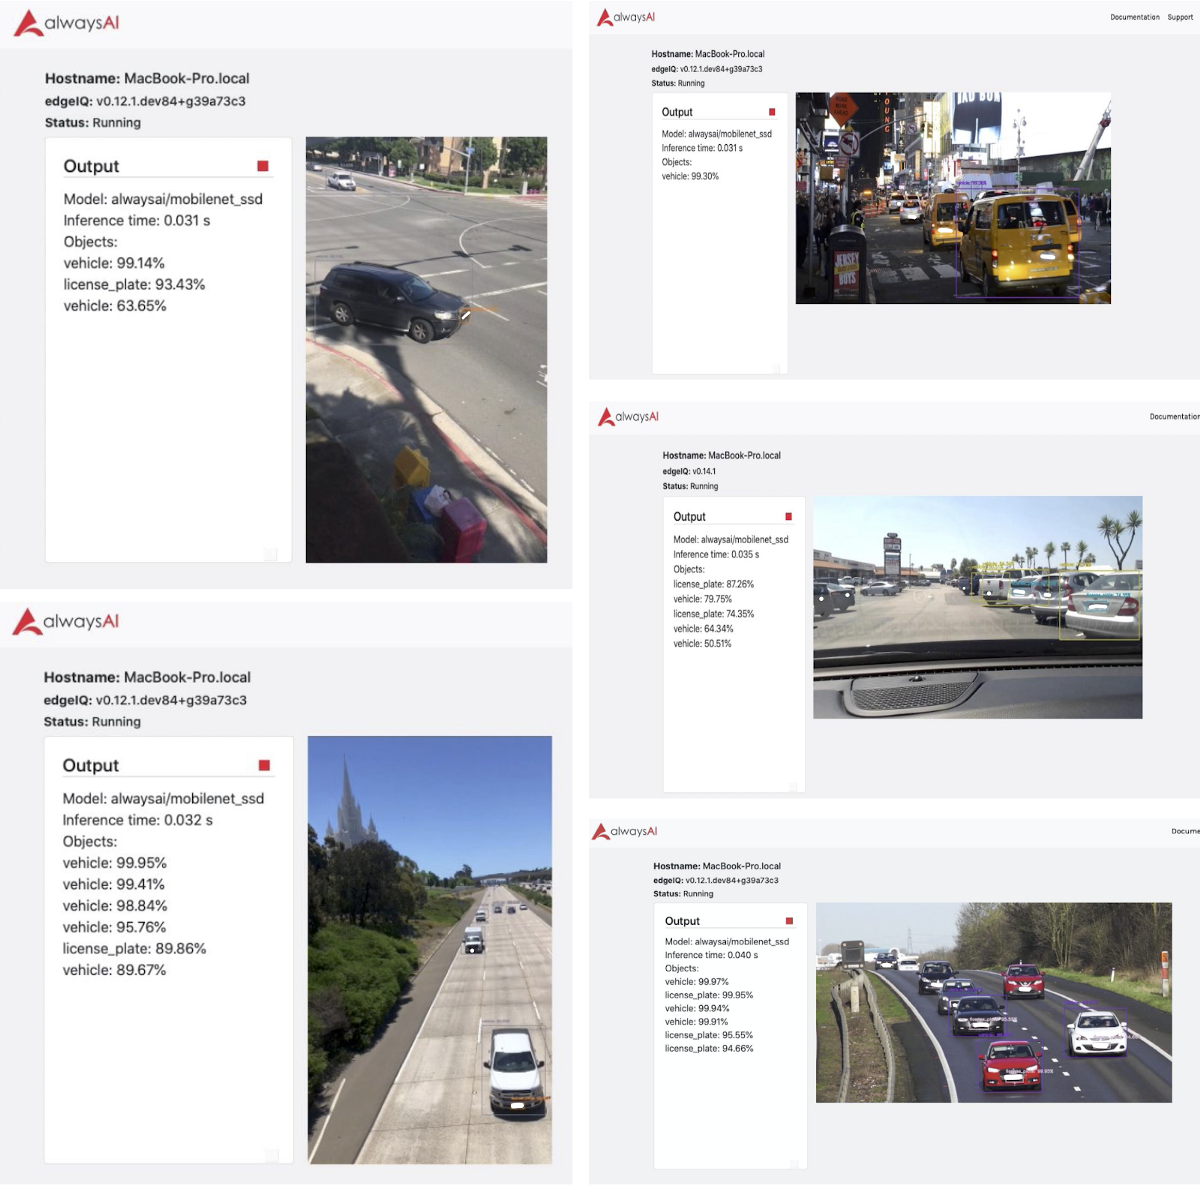 Using alwaysAI's Model Training Tool to Build a License Plate Tracker